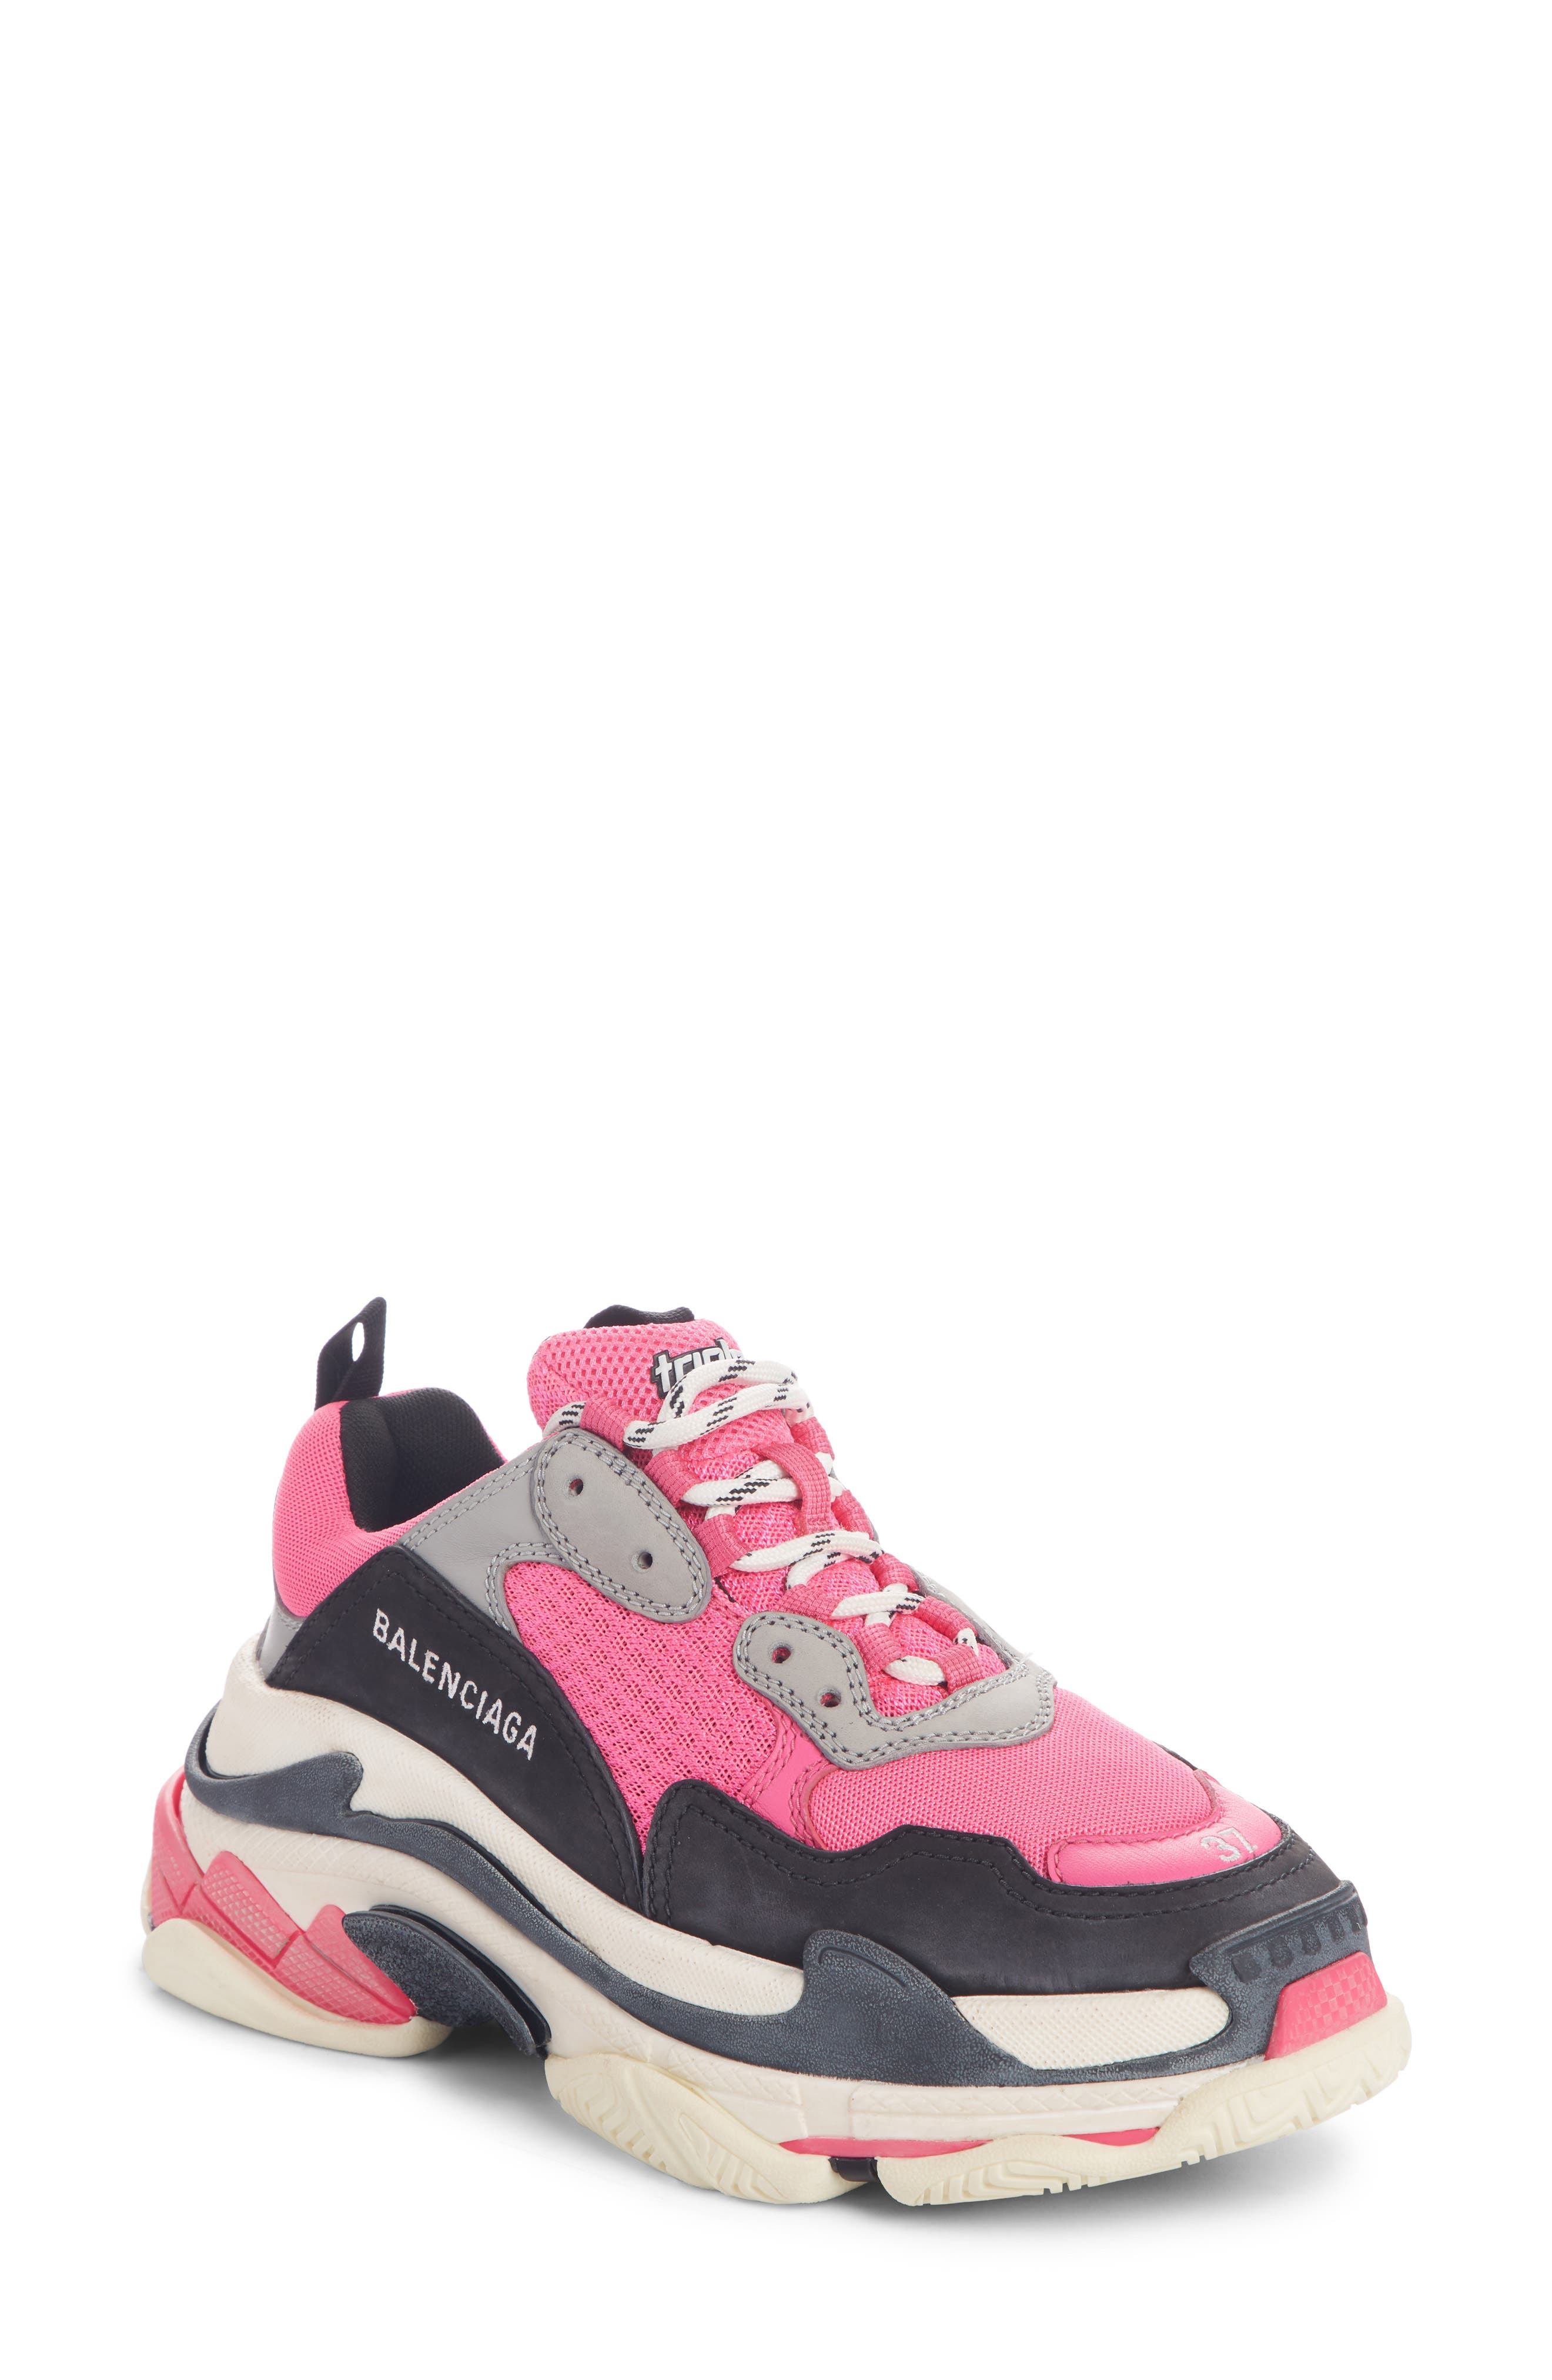 bad7f92b4facc Women's Balenciaga Shoes | Nordstrom